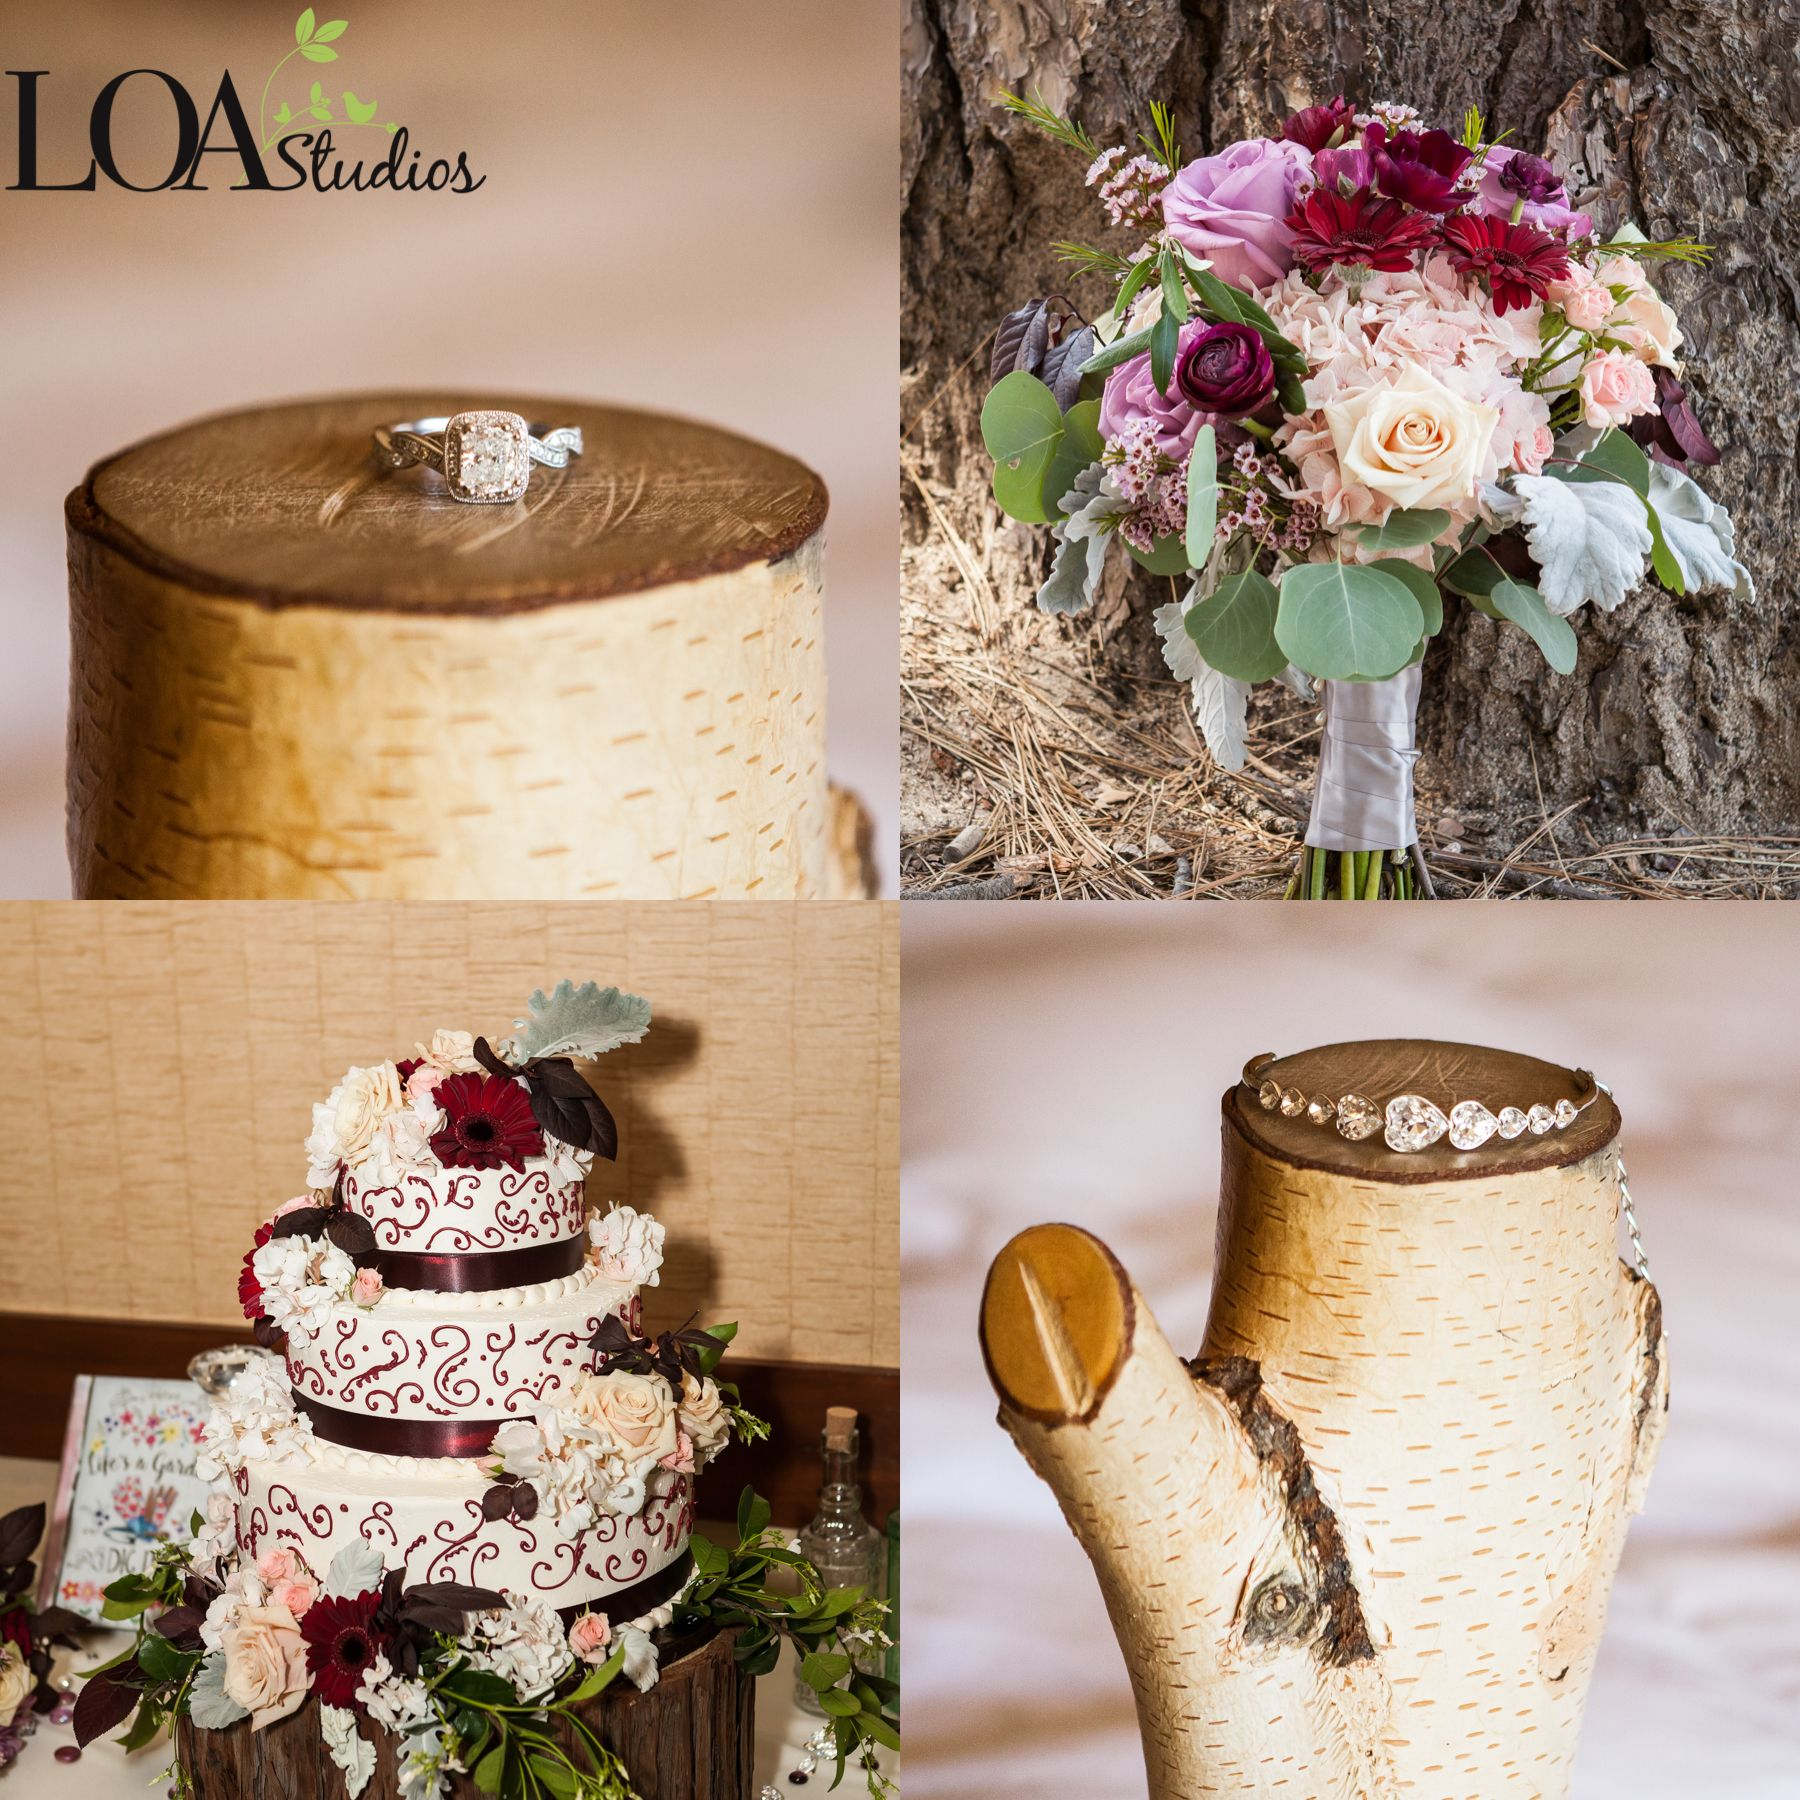 It's Always The Details That Are Different! Most Weddings